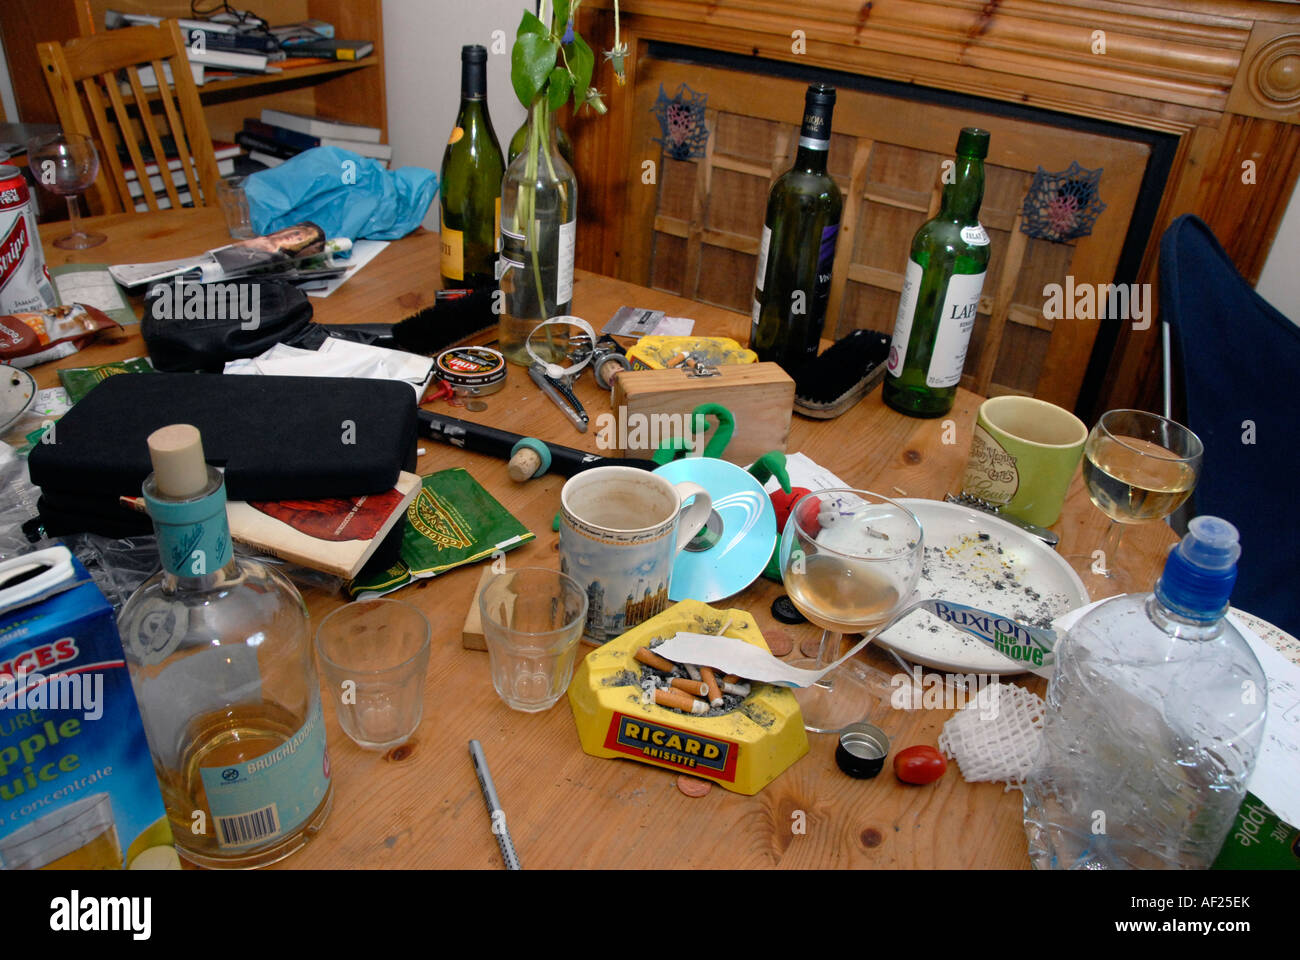 Dining table the morning after a party in Student house. - Stock Image